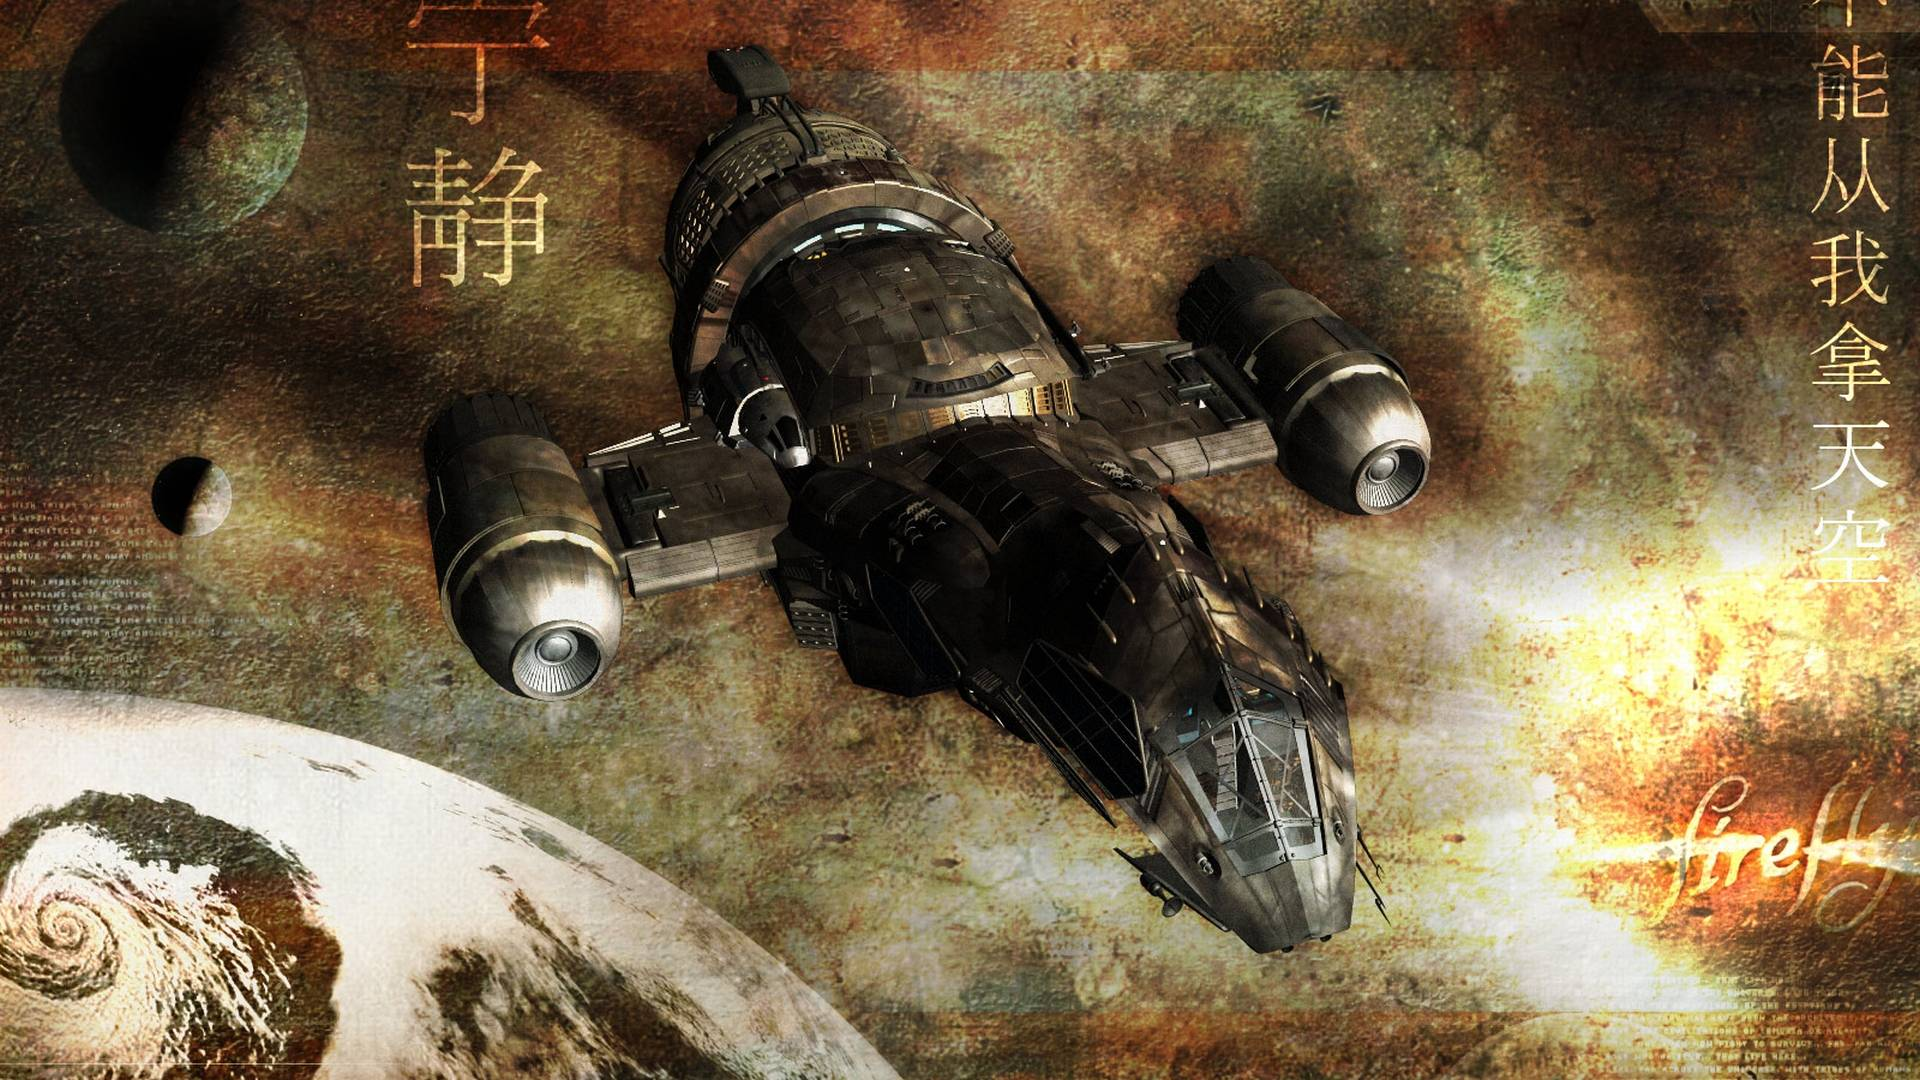 Firefly Wallpapers 10163 Wallpapers